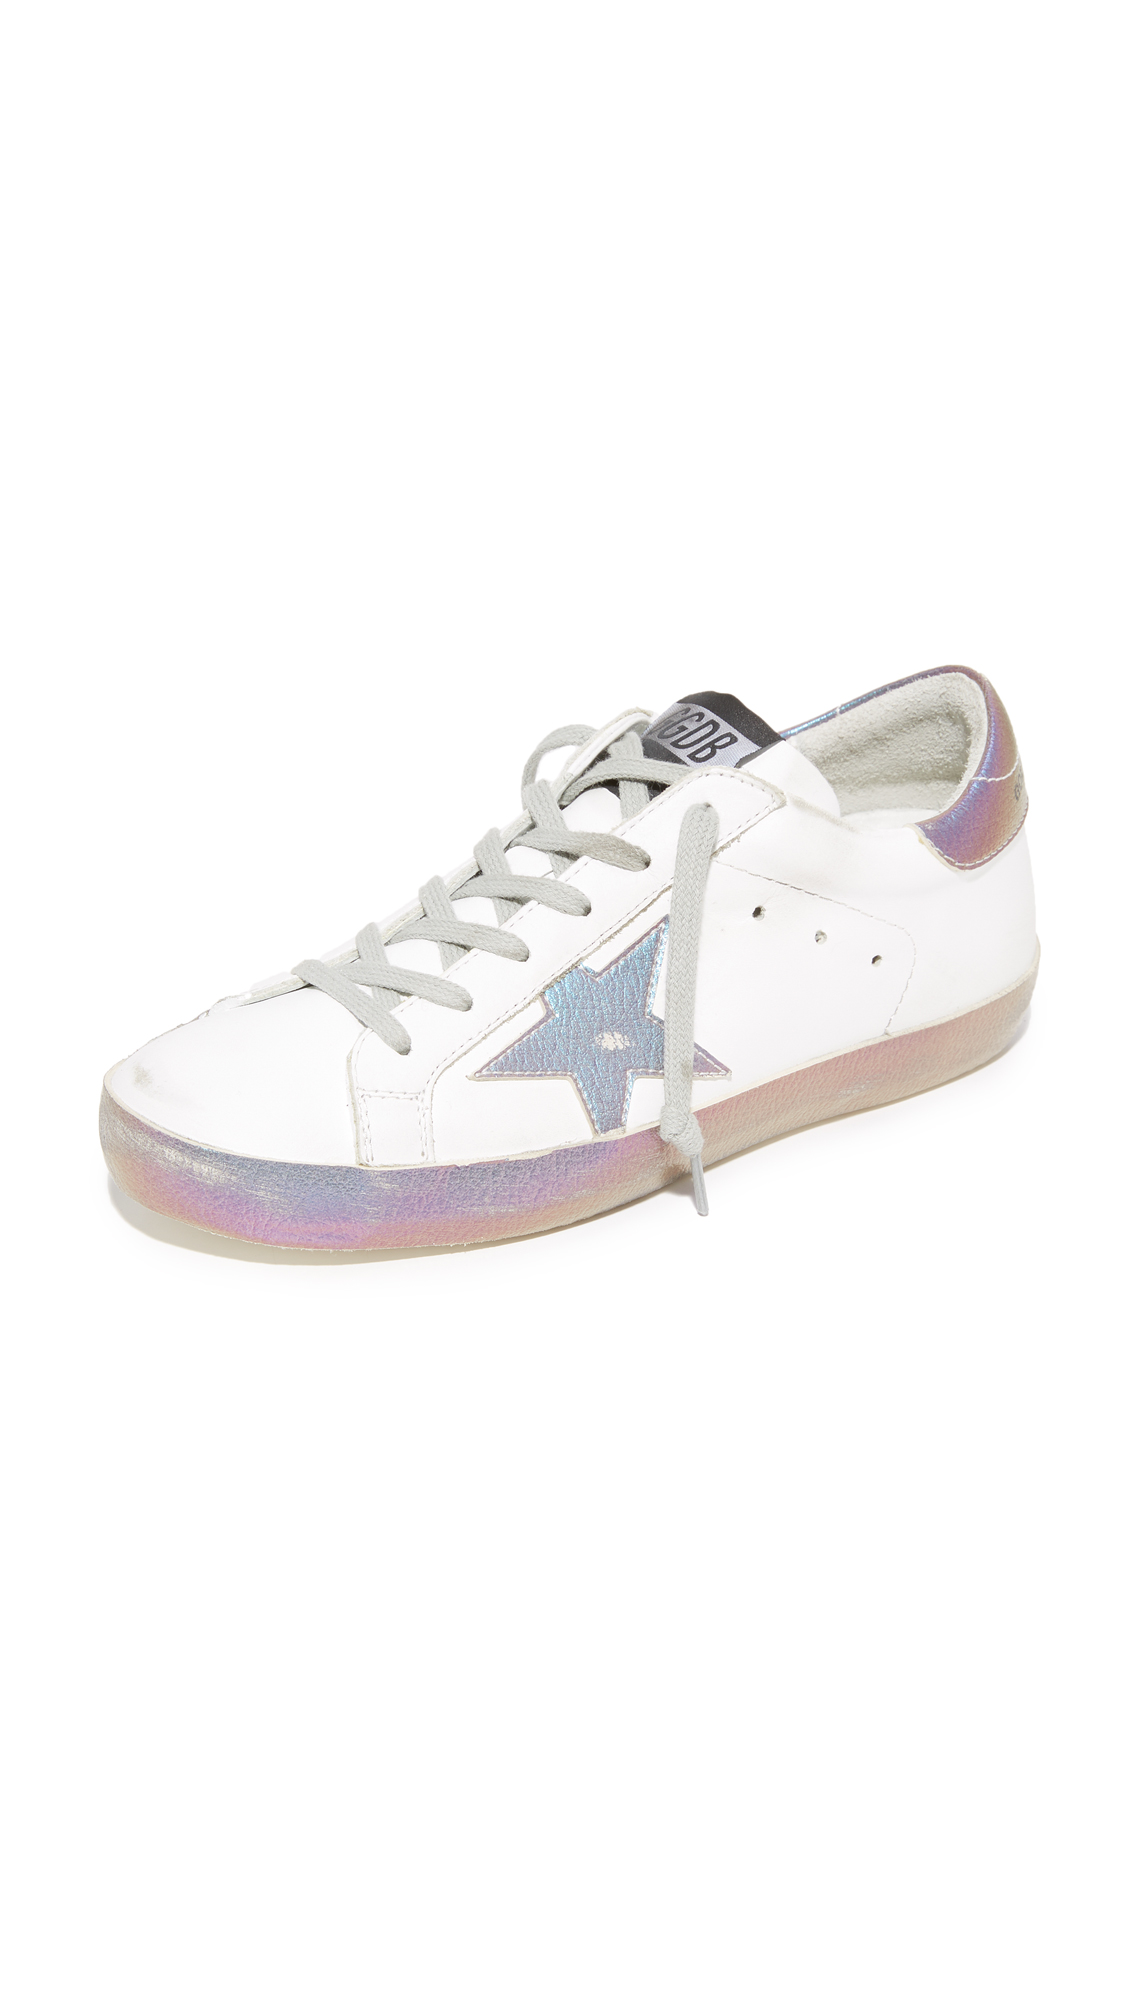 Golden Goose Superstar Sneakers - Sparkle White/Iridescent Star